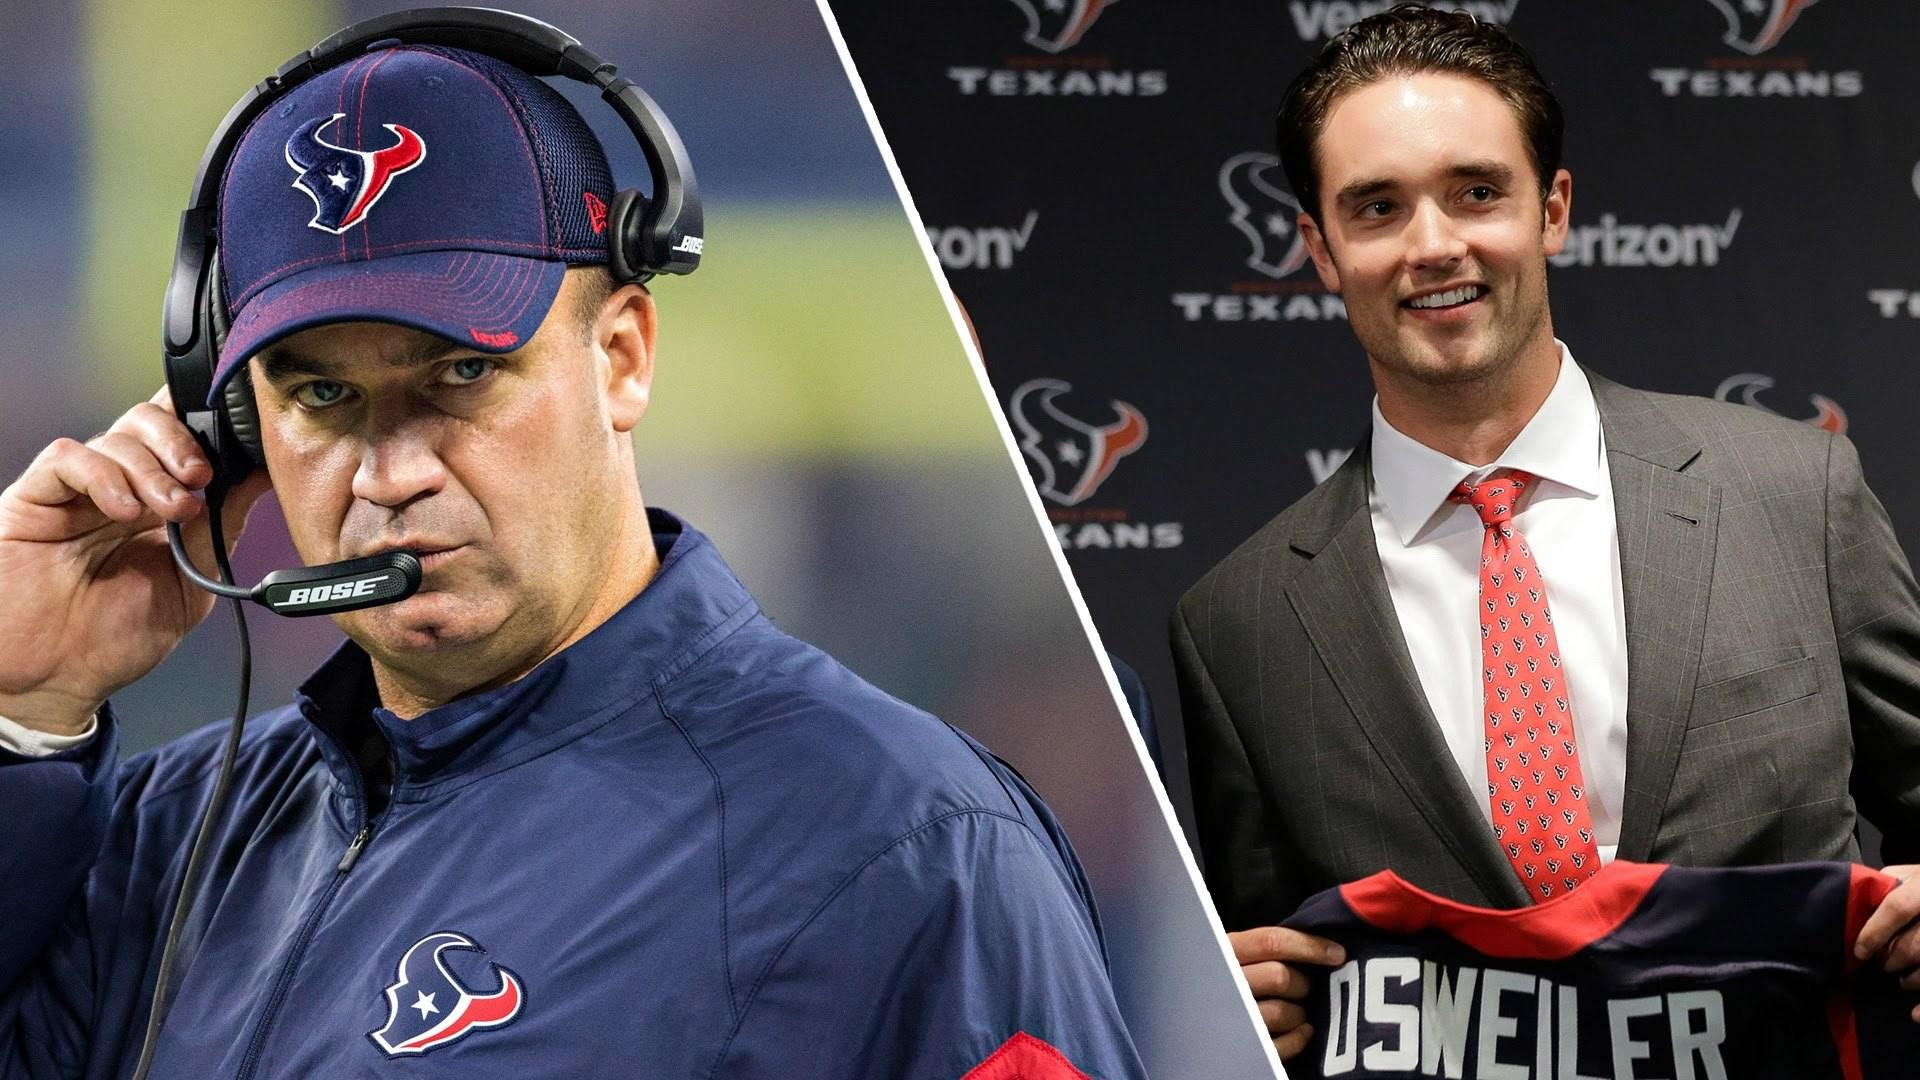 What To Expect When You're Expecting...To Lose: Texans @ Raiders Preview